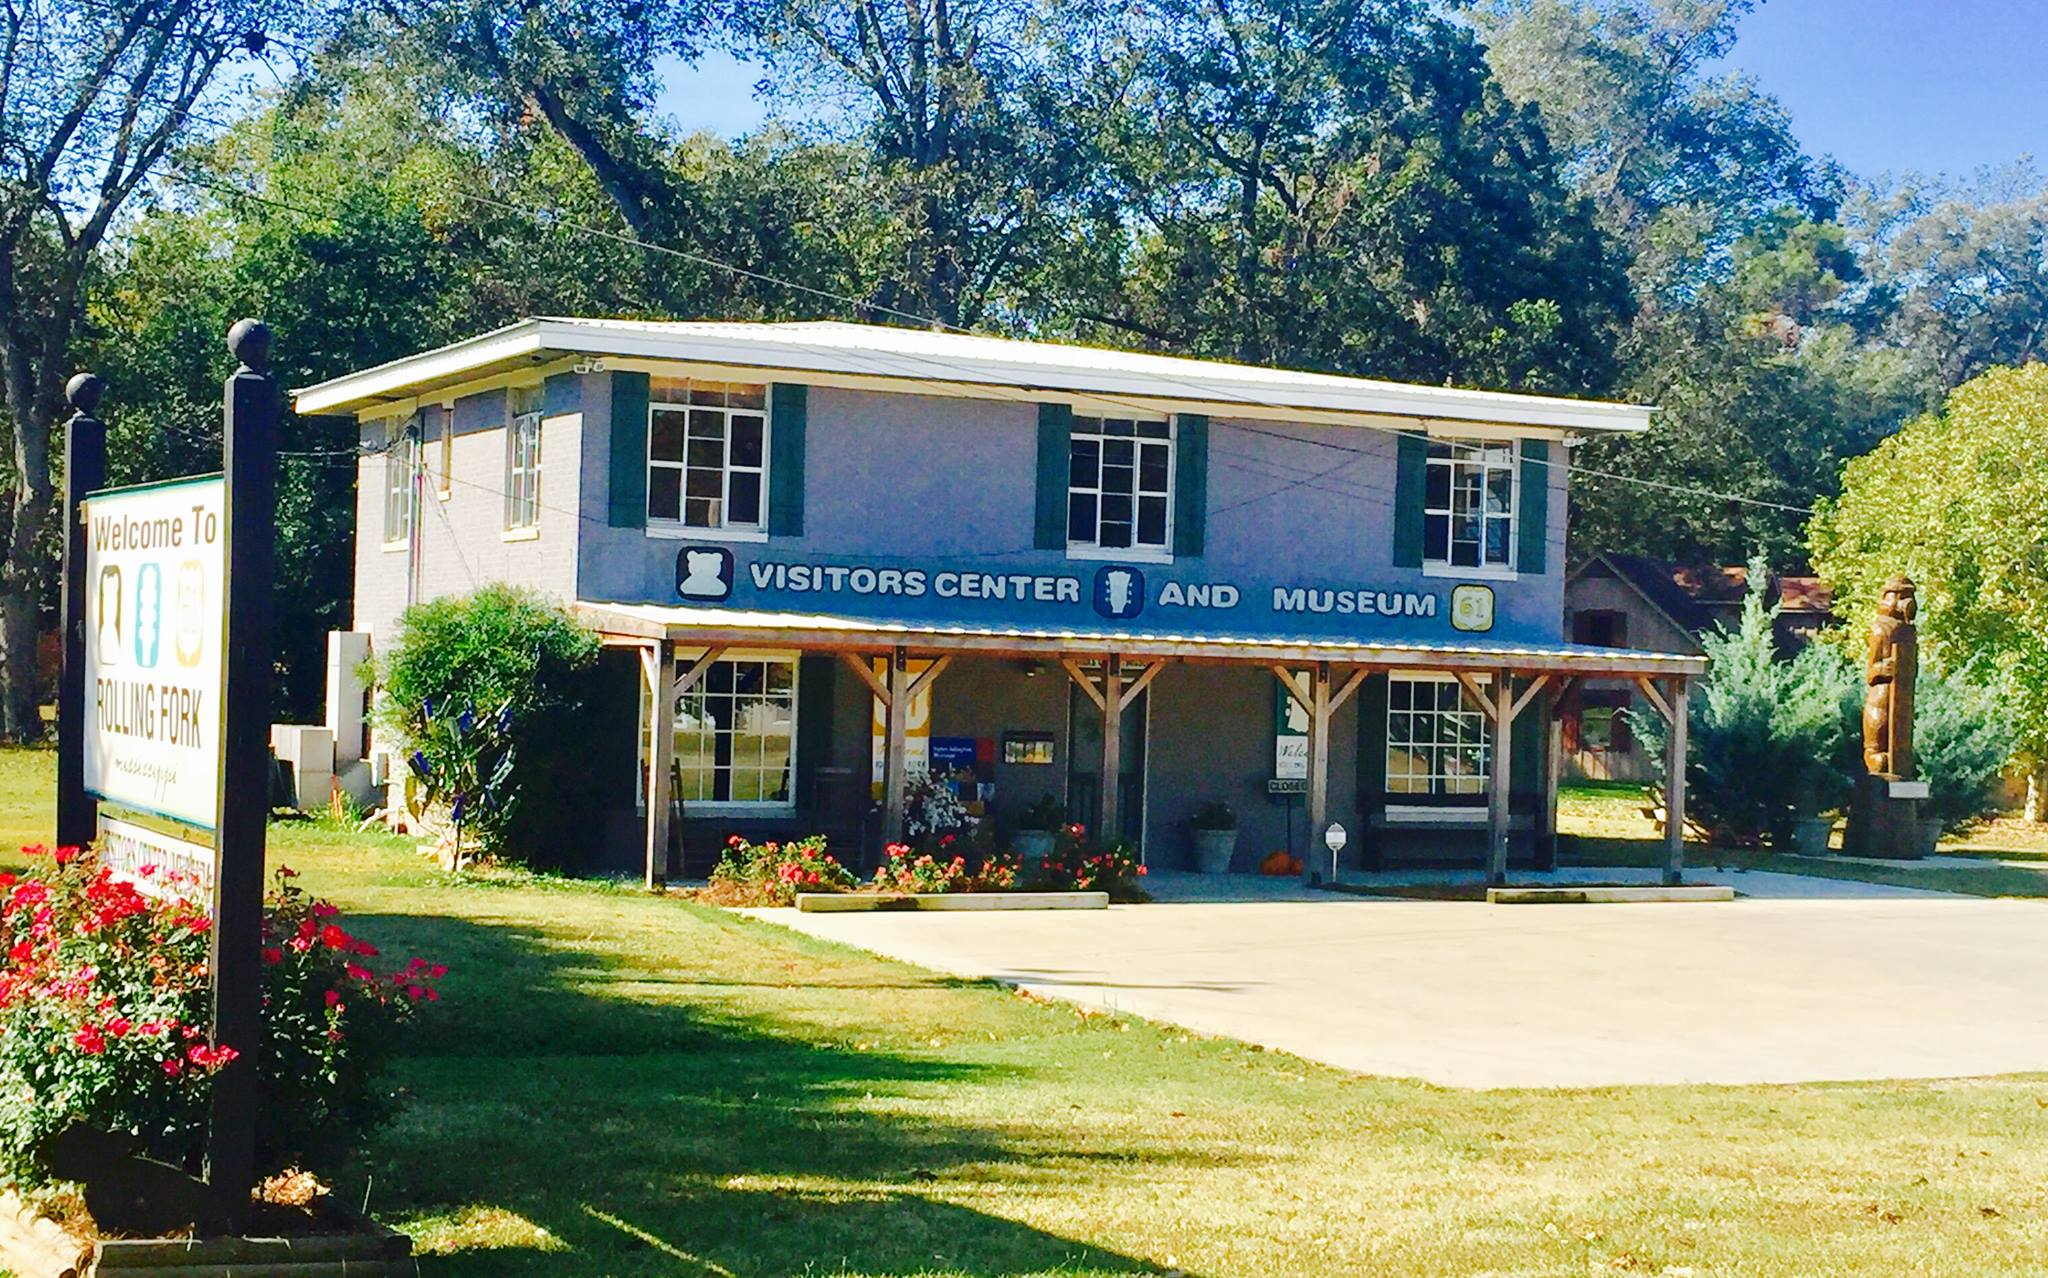 Rolling Fork Visitors Center and Museum showcases the history of the city and region.